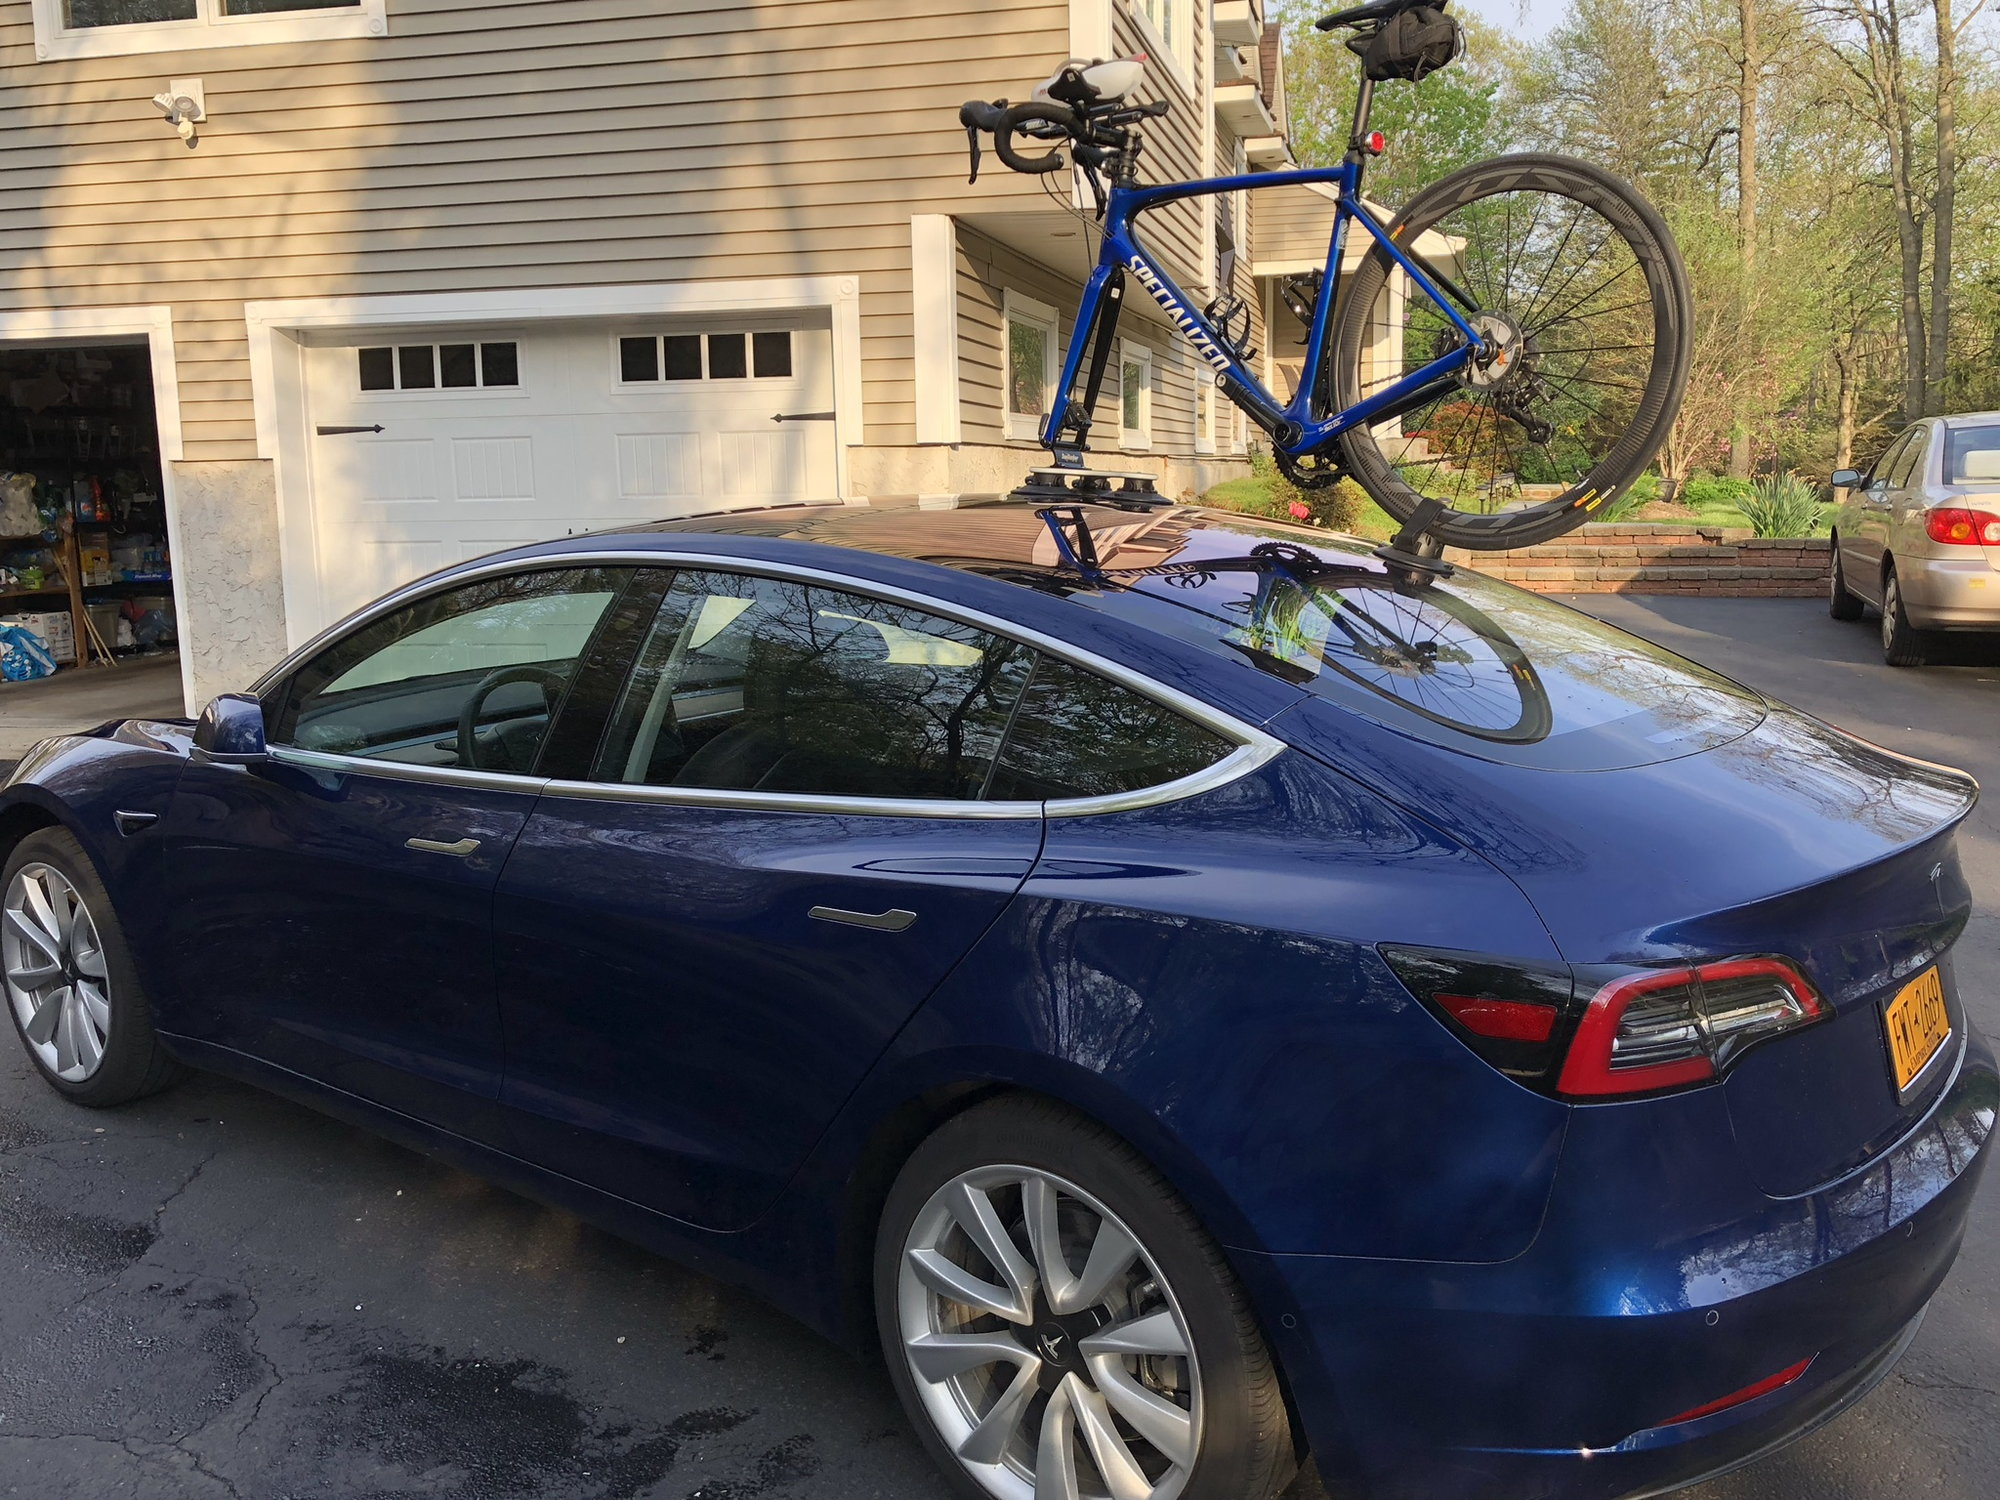 SeaSucker cracked Tesla Model 3 rear glass - Page 2 - Bike